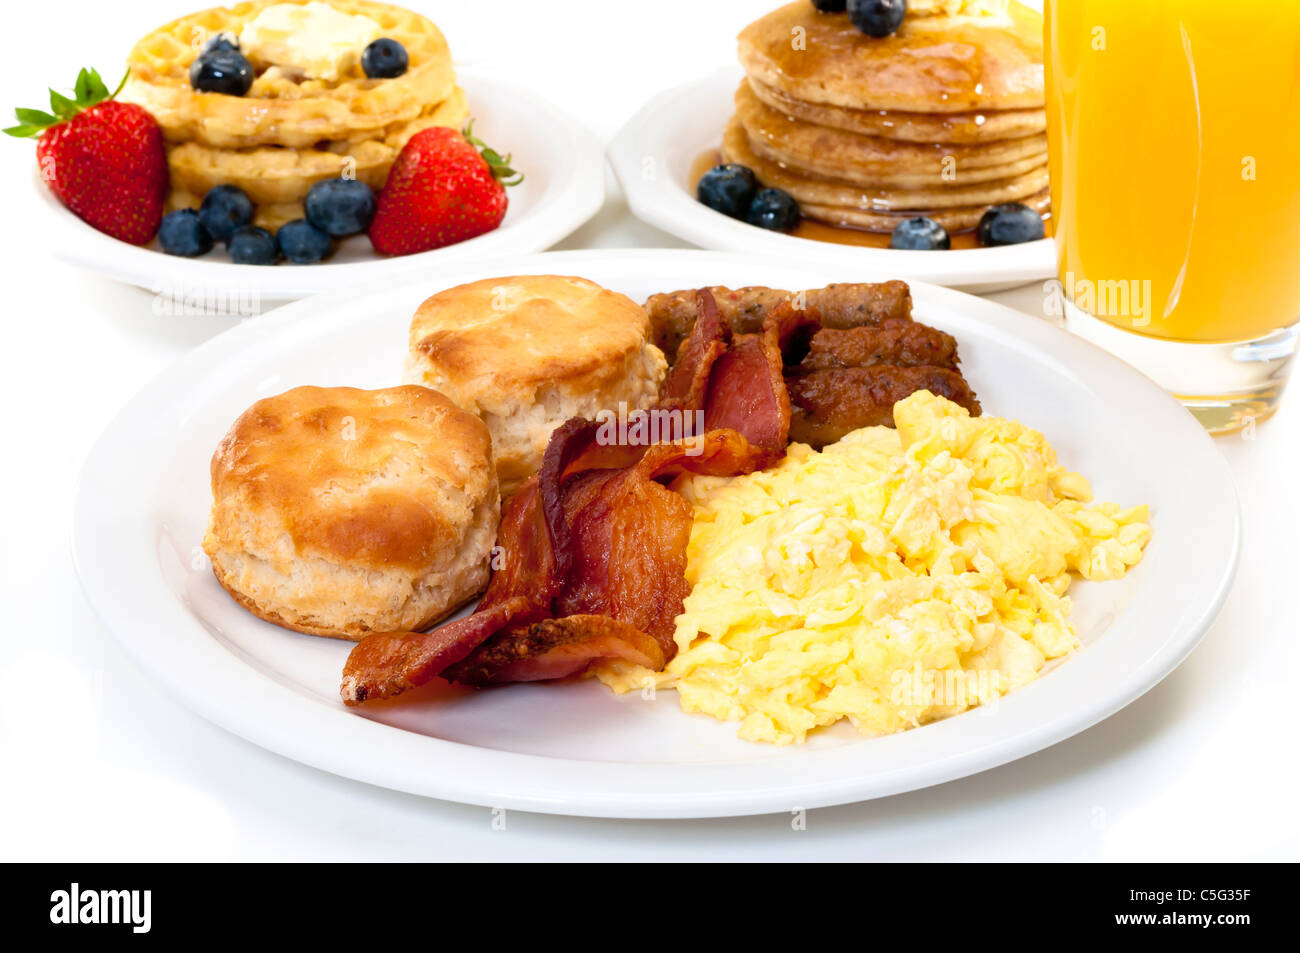 Breakfast plate with scrambled eggs, bacon, and buttermilk biscuits.  Waffles, pancakes, and orange juice in background. - Stock Image